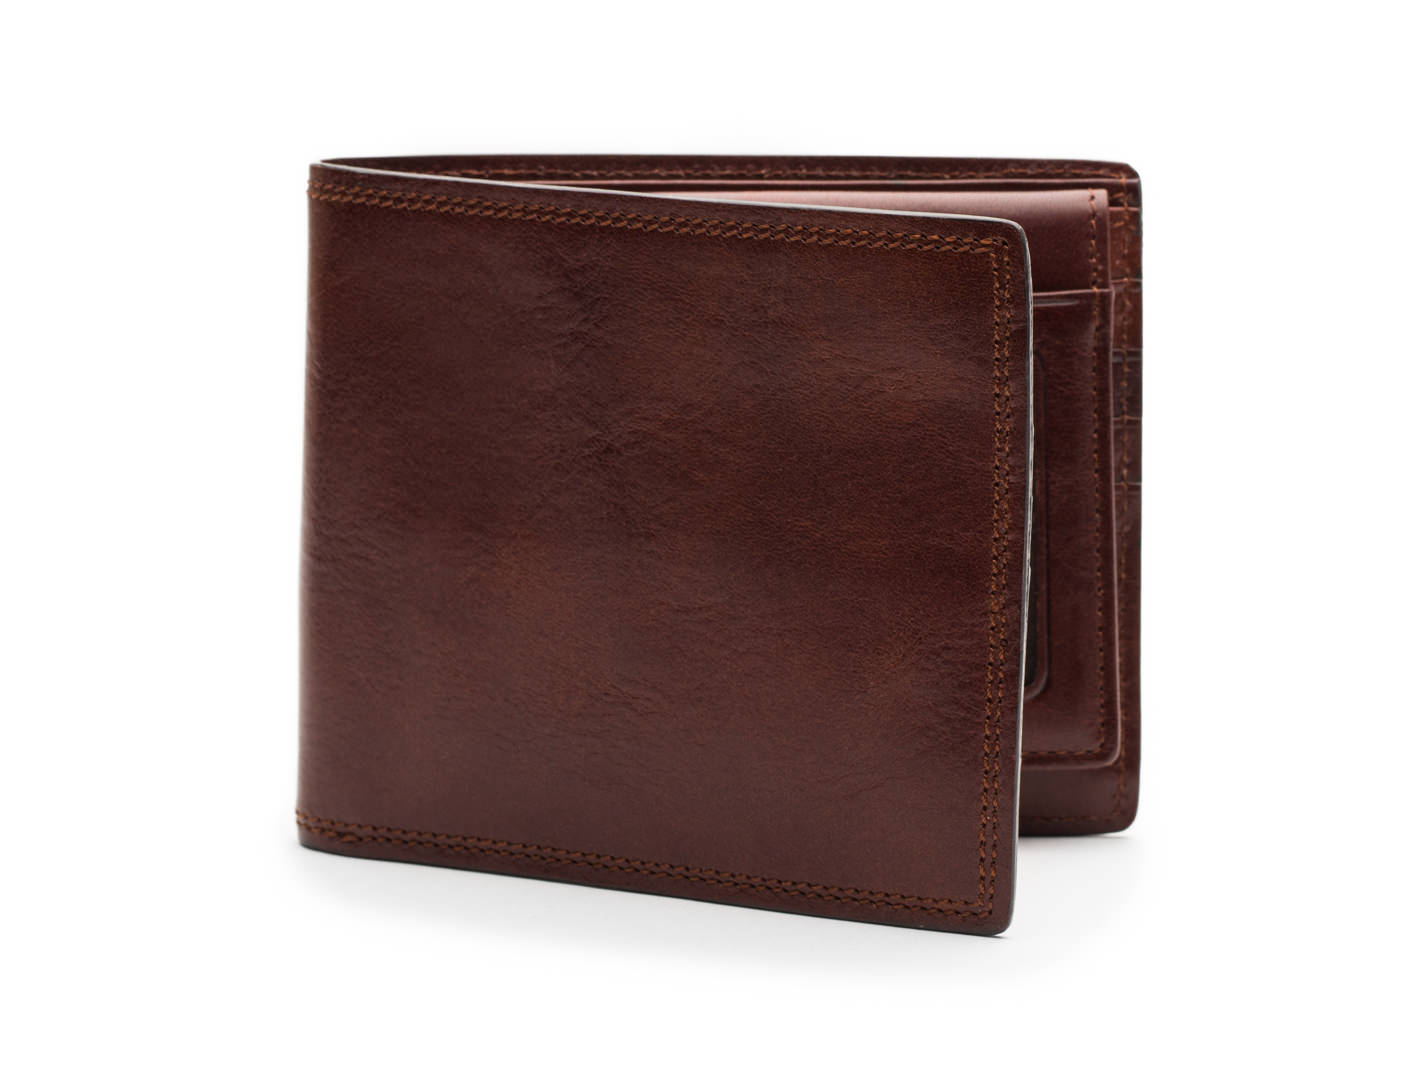 Euro Credit Wallet w/I.D. Passcase-218 Dark Brown - 218 Dark Brown